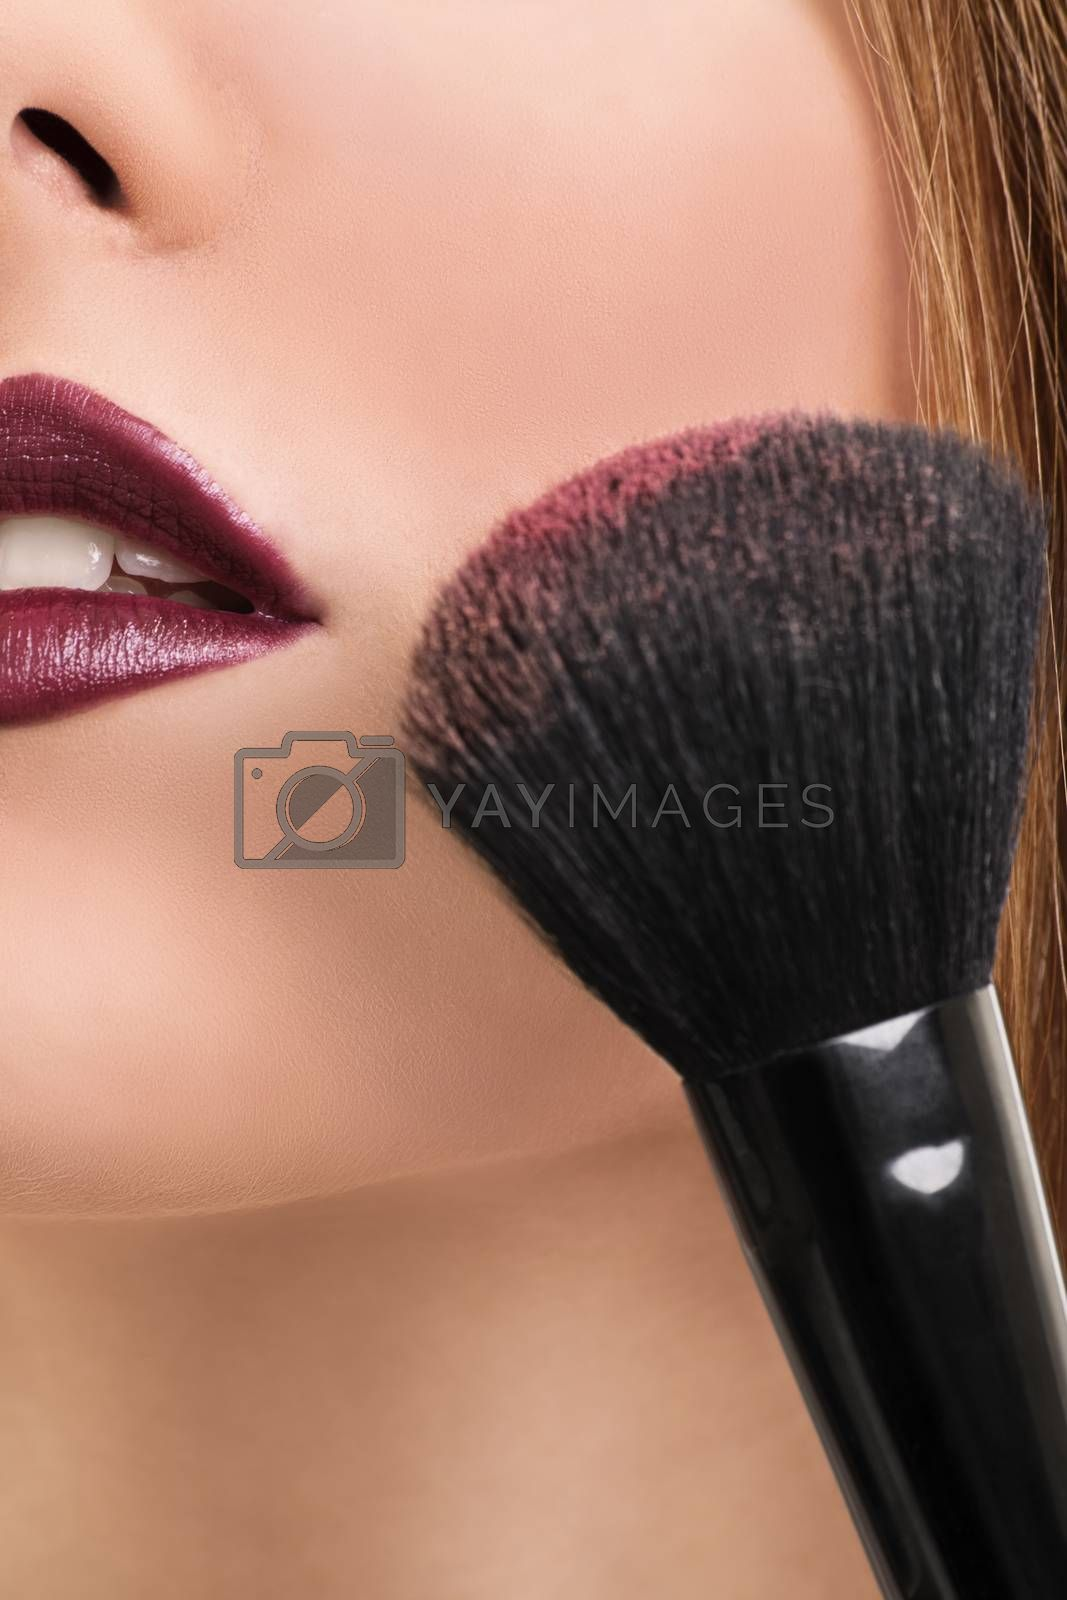 A close up shot of a girl applying make up with a make up brush.